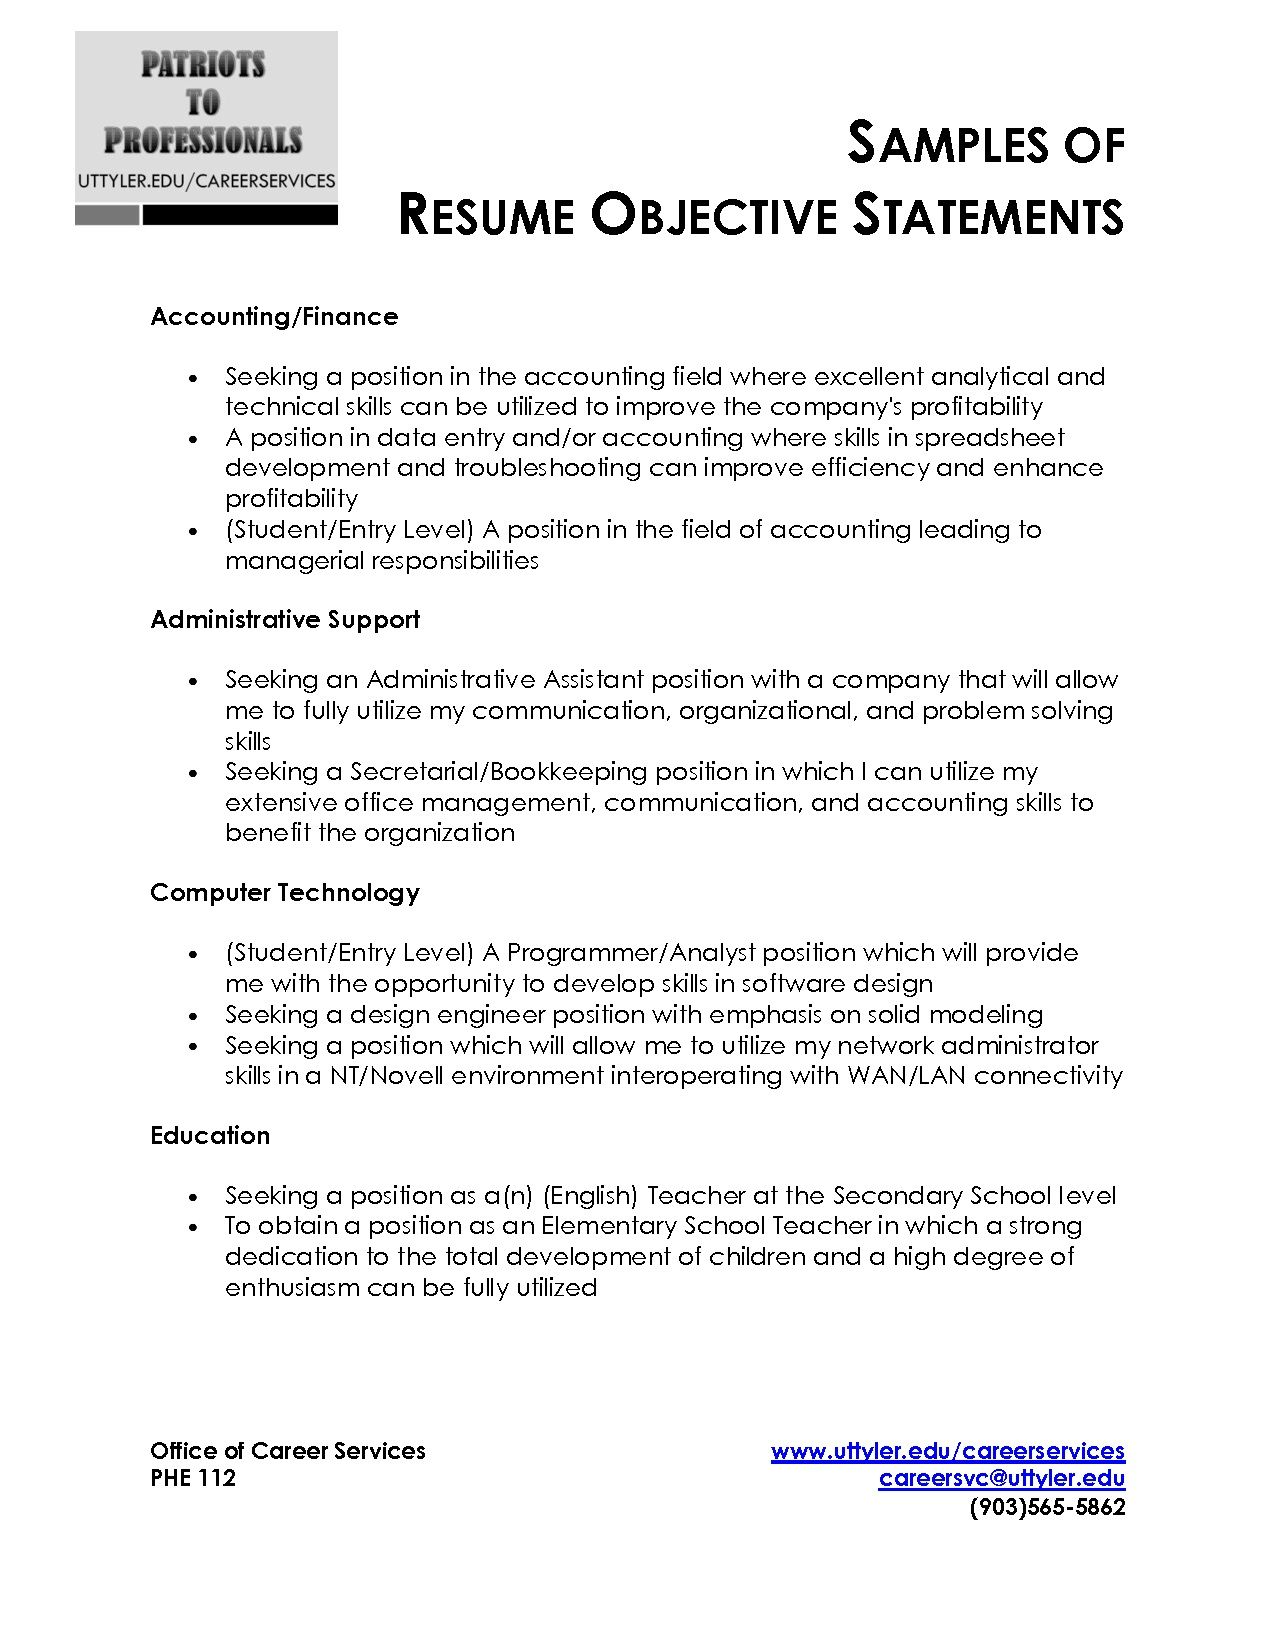 Resume Mission Statement Examples Sample Resume Objective Statement  Adsbygoogle  Window